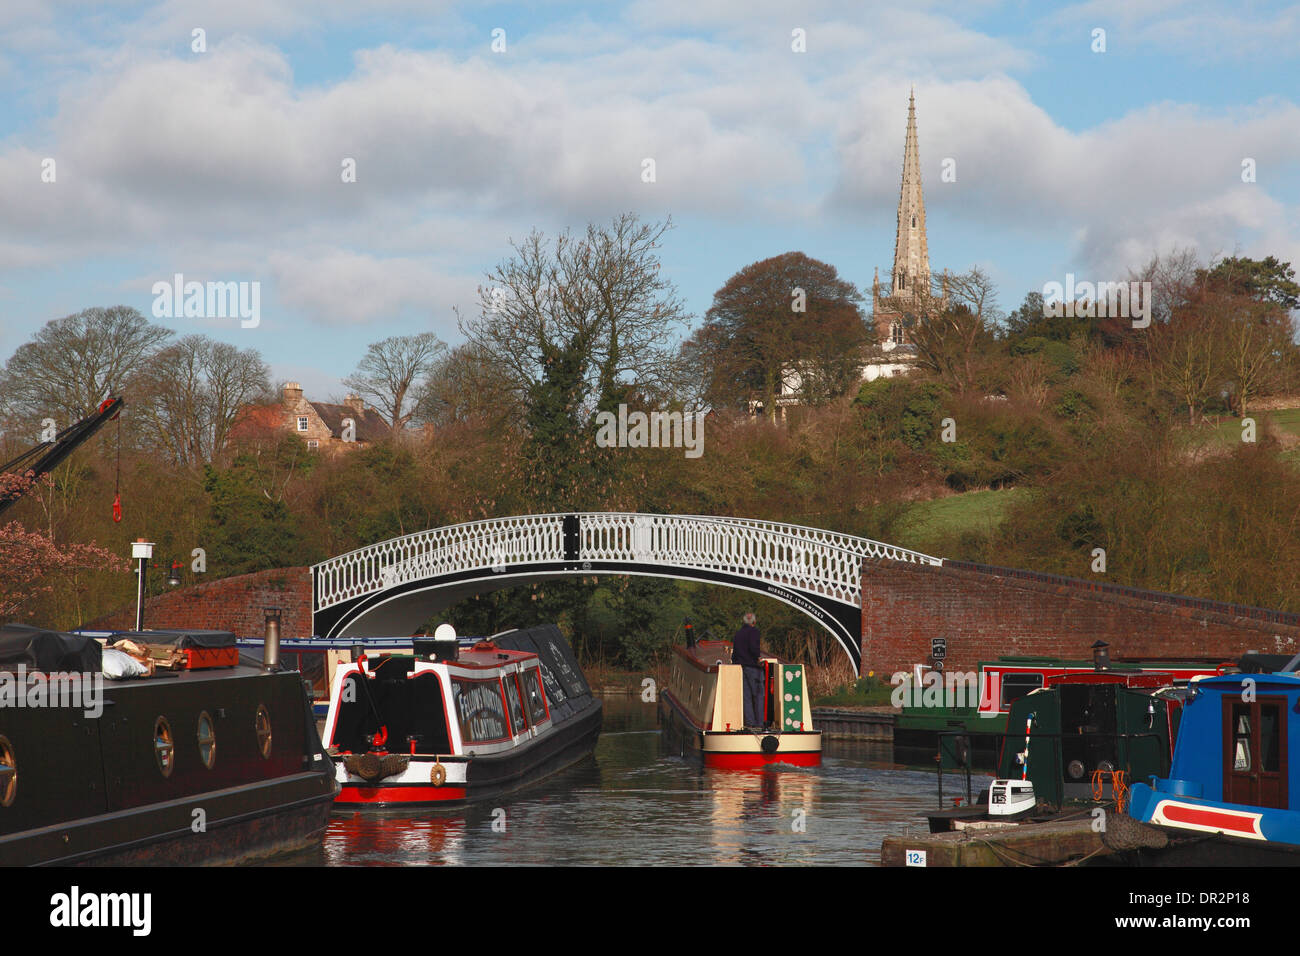 A narrowboat leaving Braunston marina on the Grand Union Canal and the spire of All Saints' Church, Braunston, Northants Stock Photo